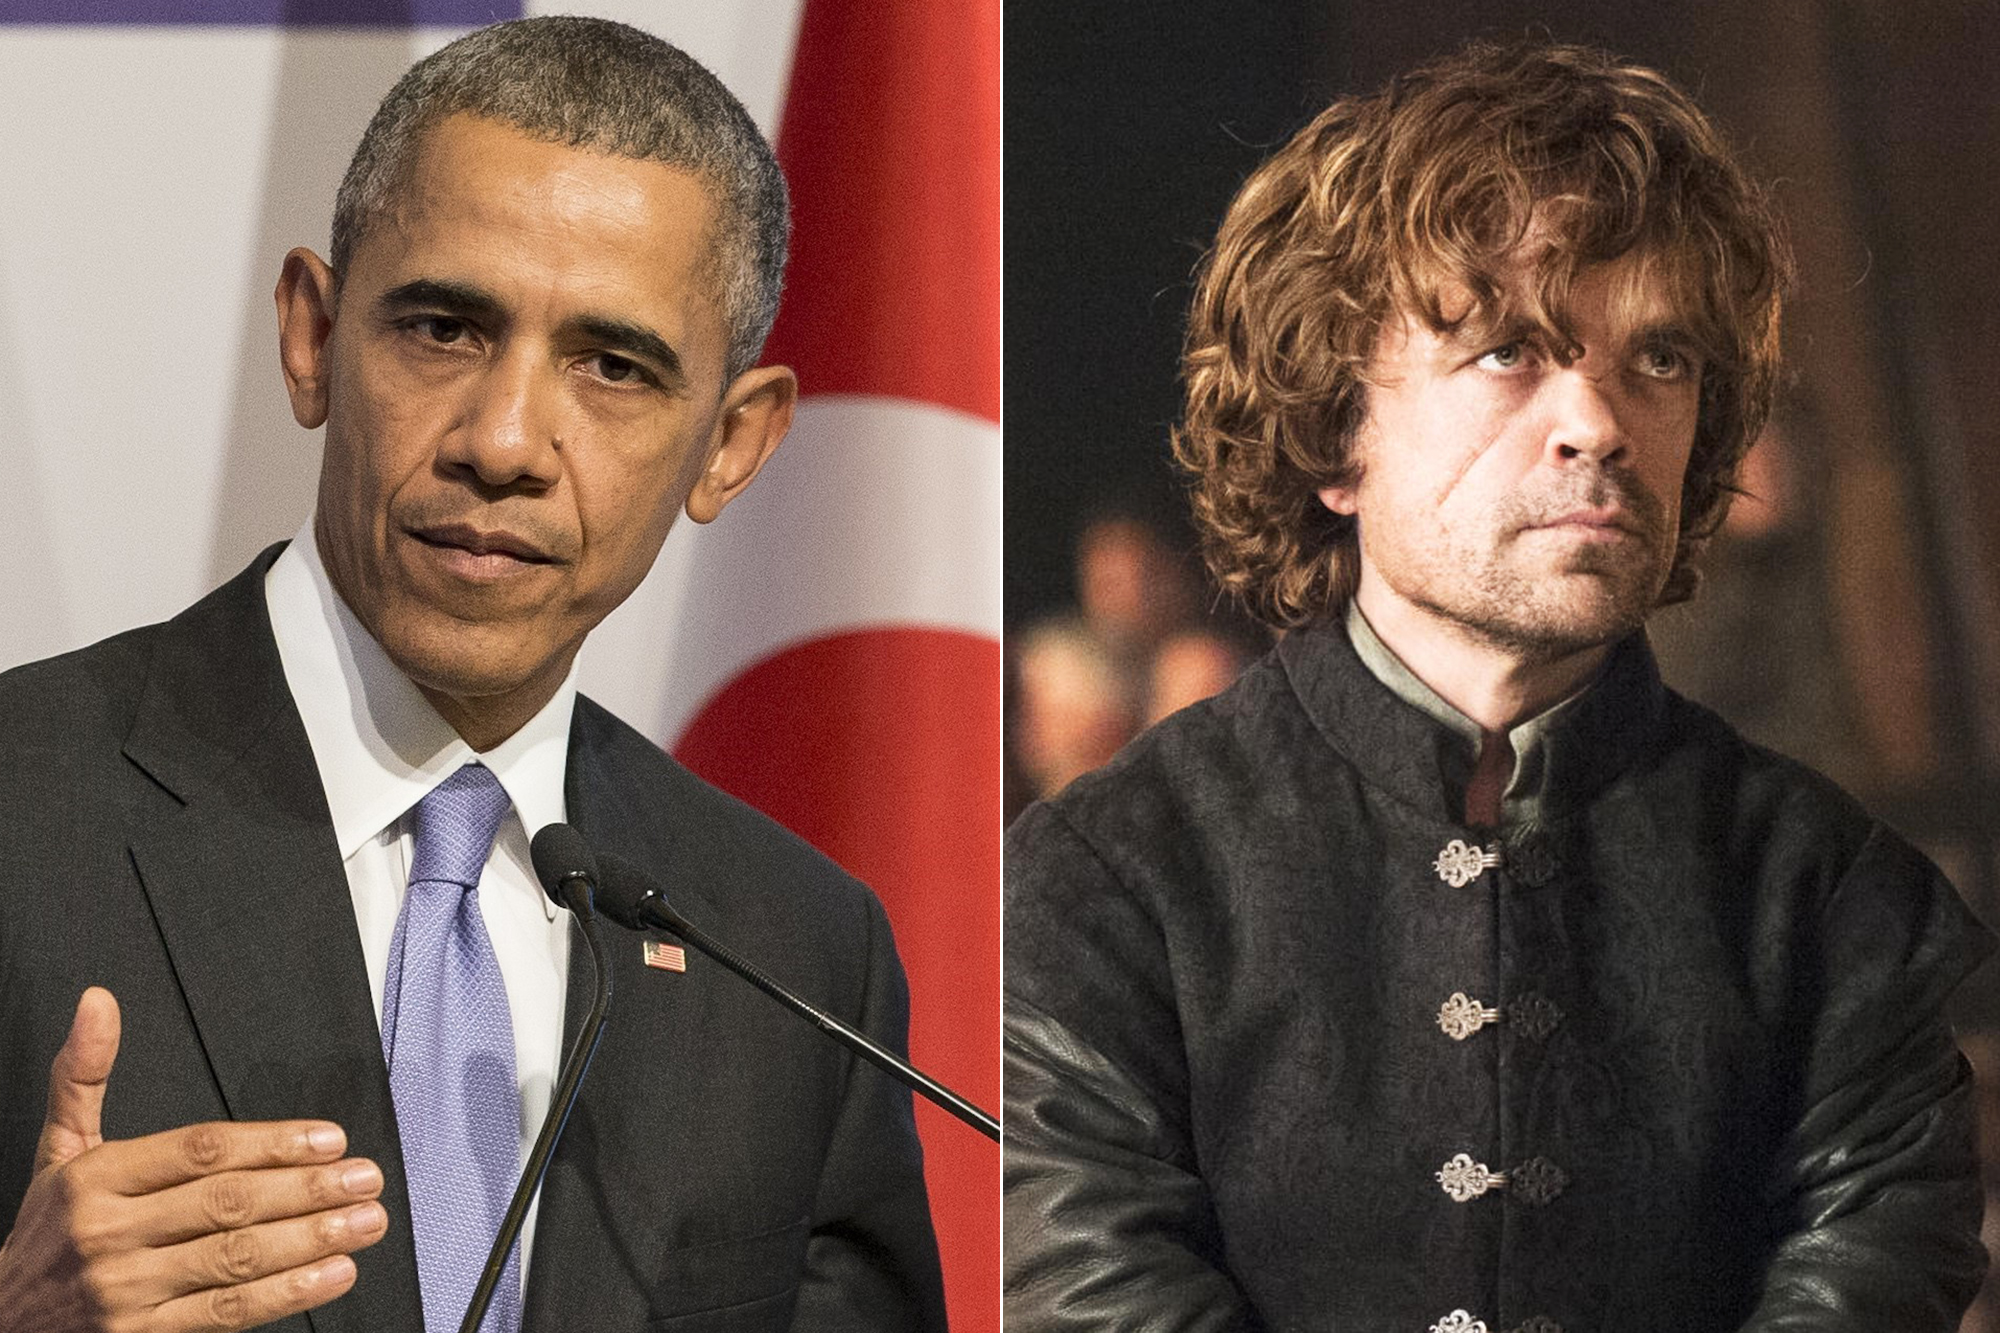 From left: Barack Obama and Tyrion Lannister.